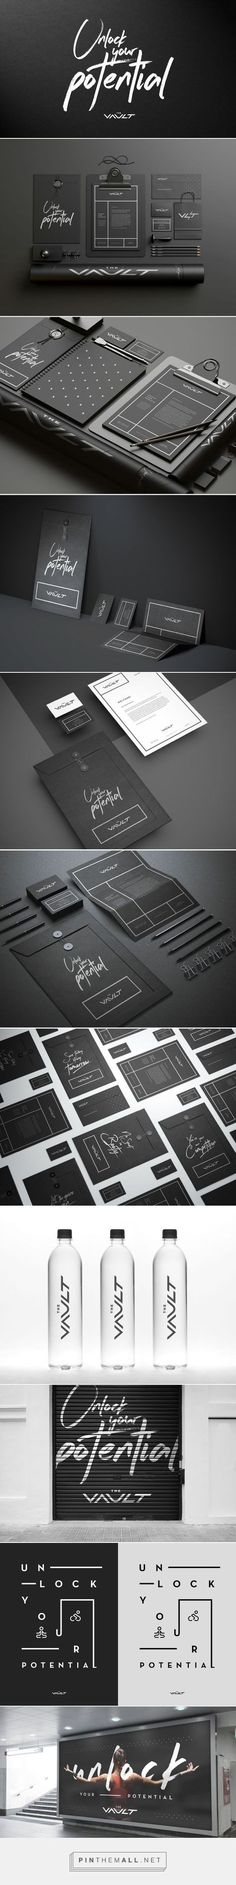 Fivestar Branding Agency – Business Branding and Web Design for Small Business Owners Corporate Identity Design, Brand Identity Design, Graphic Design Branding, Business Branding, Visual Identity, Typography Design, Branding Agency, Business Cards, Identity Branding